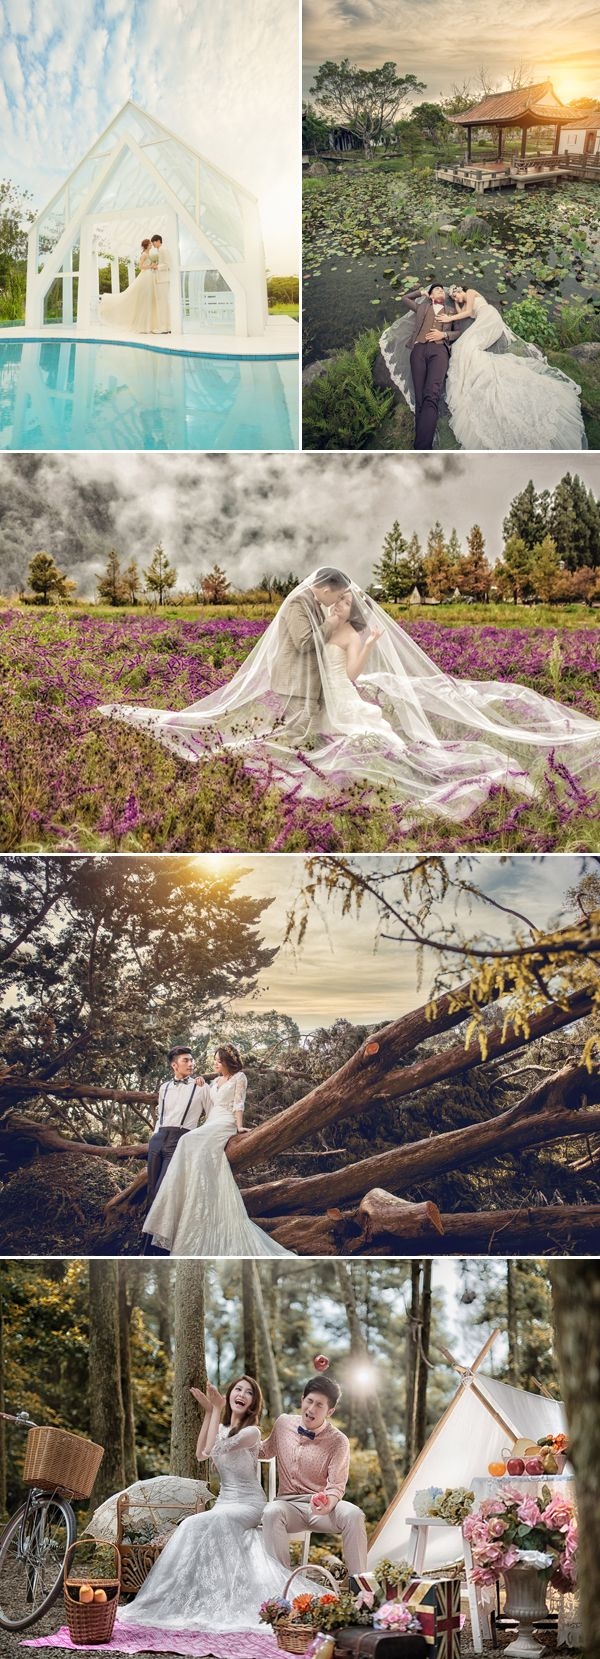 If you are a stylish, adventurous couple who would love to try out different concepts for your pre-wedding photo, we've got great news for you! Taiwan based bridal shop Royal Wed is offering a special pre-wedding package exclusive to Praise Wedding readers that includes the most gorgeous gowns, stylish makeup and hairdo, and both studio and …